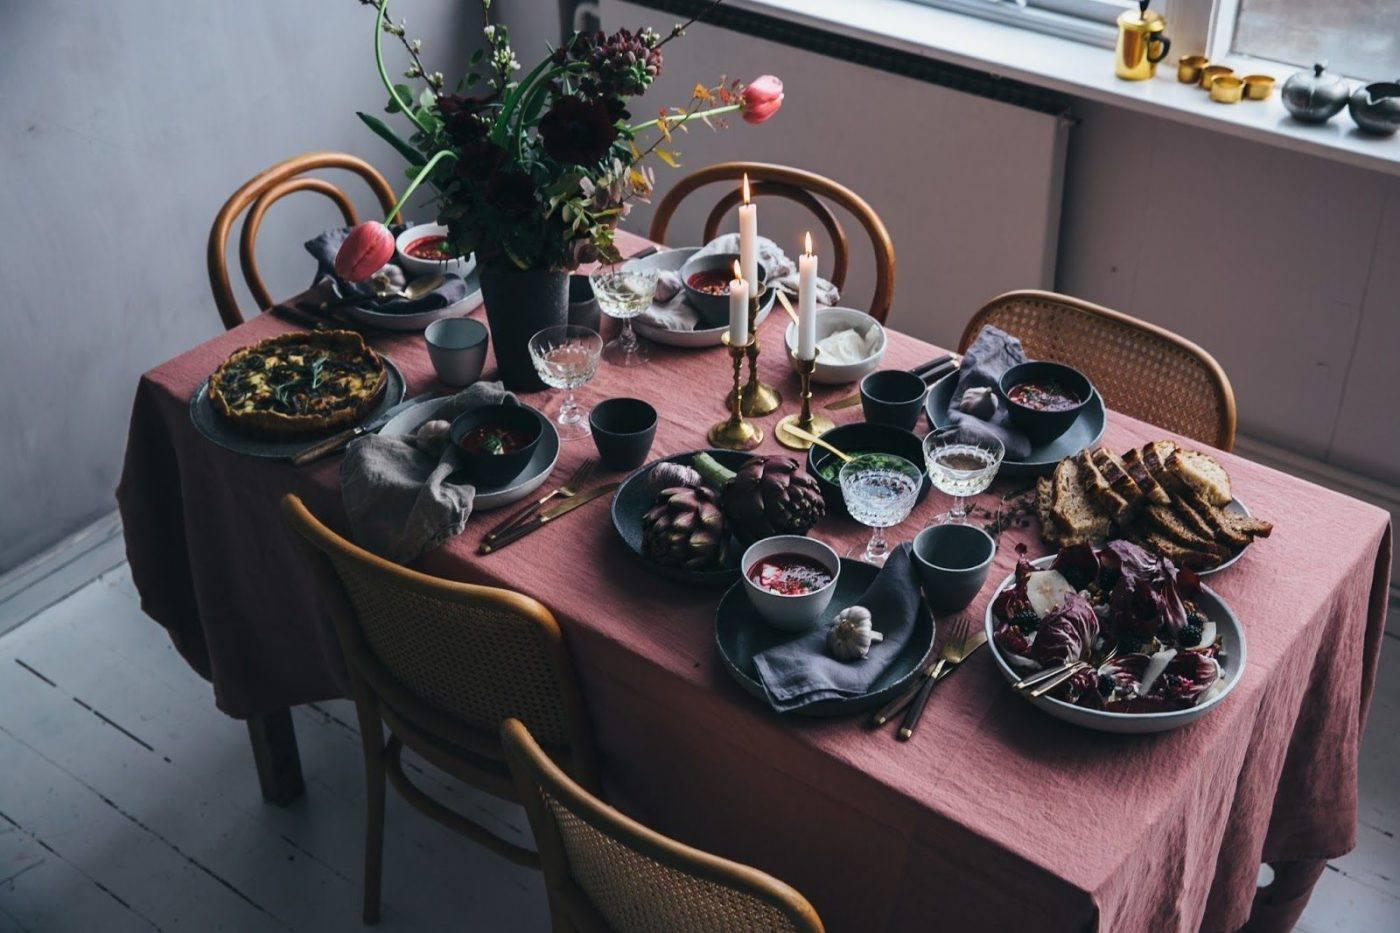 A food photograph by Laura Muthesius